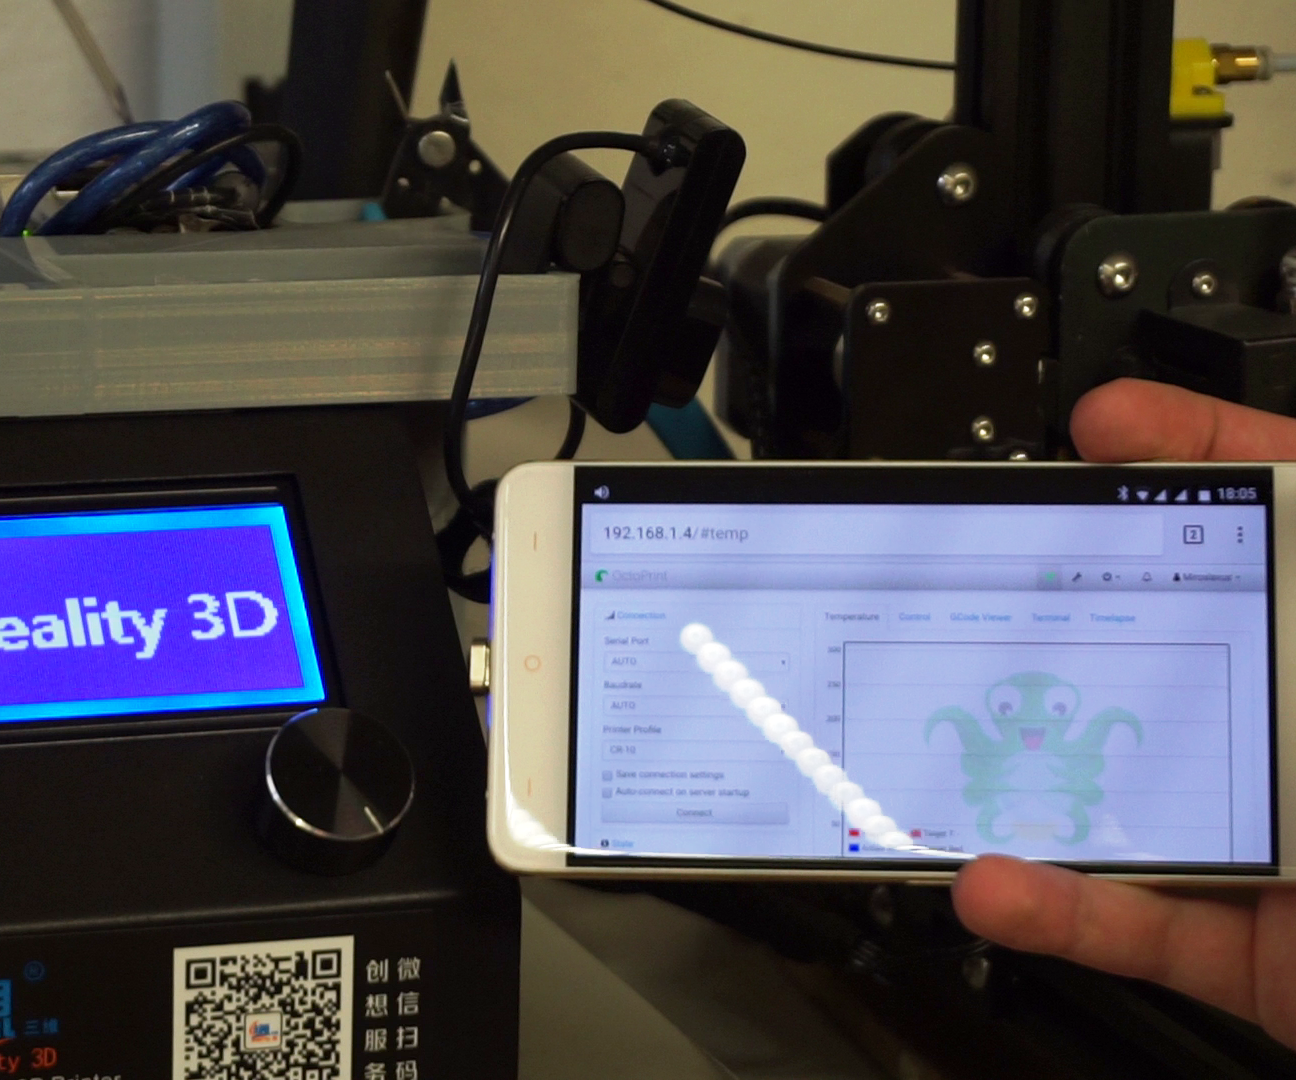 Turn Your 3D Printer On/off Using Octoprint: 5 Steps (with Pictures)